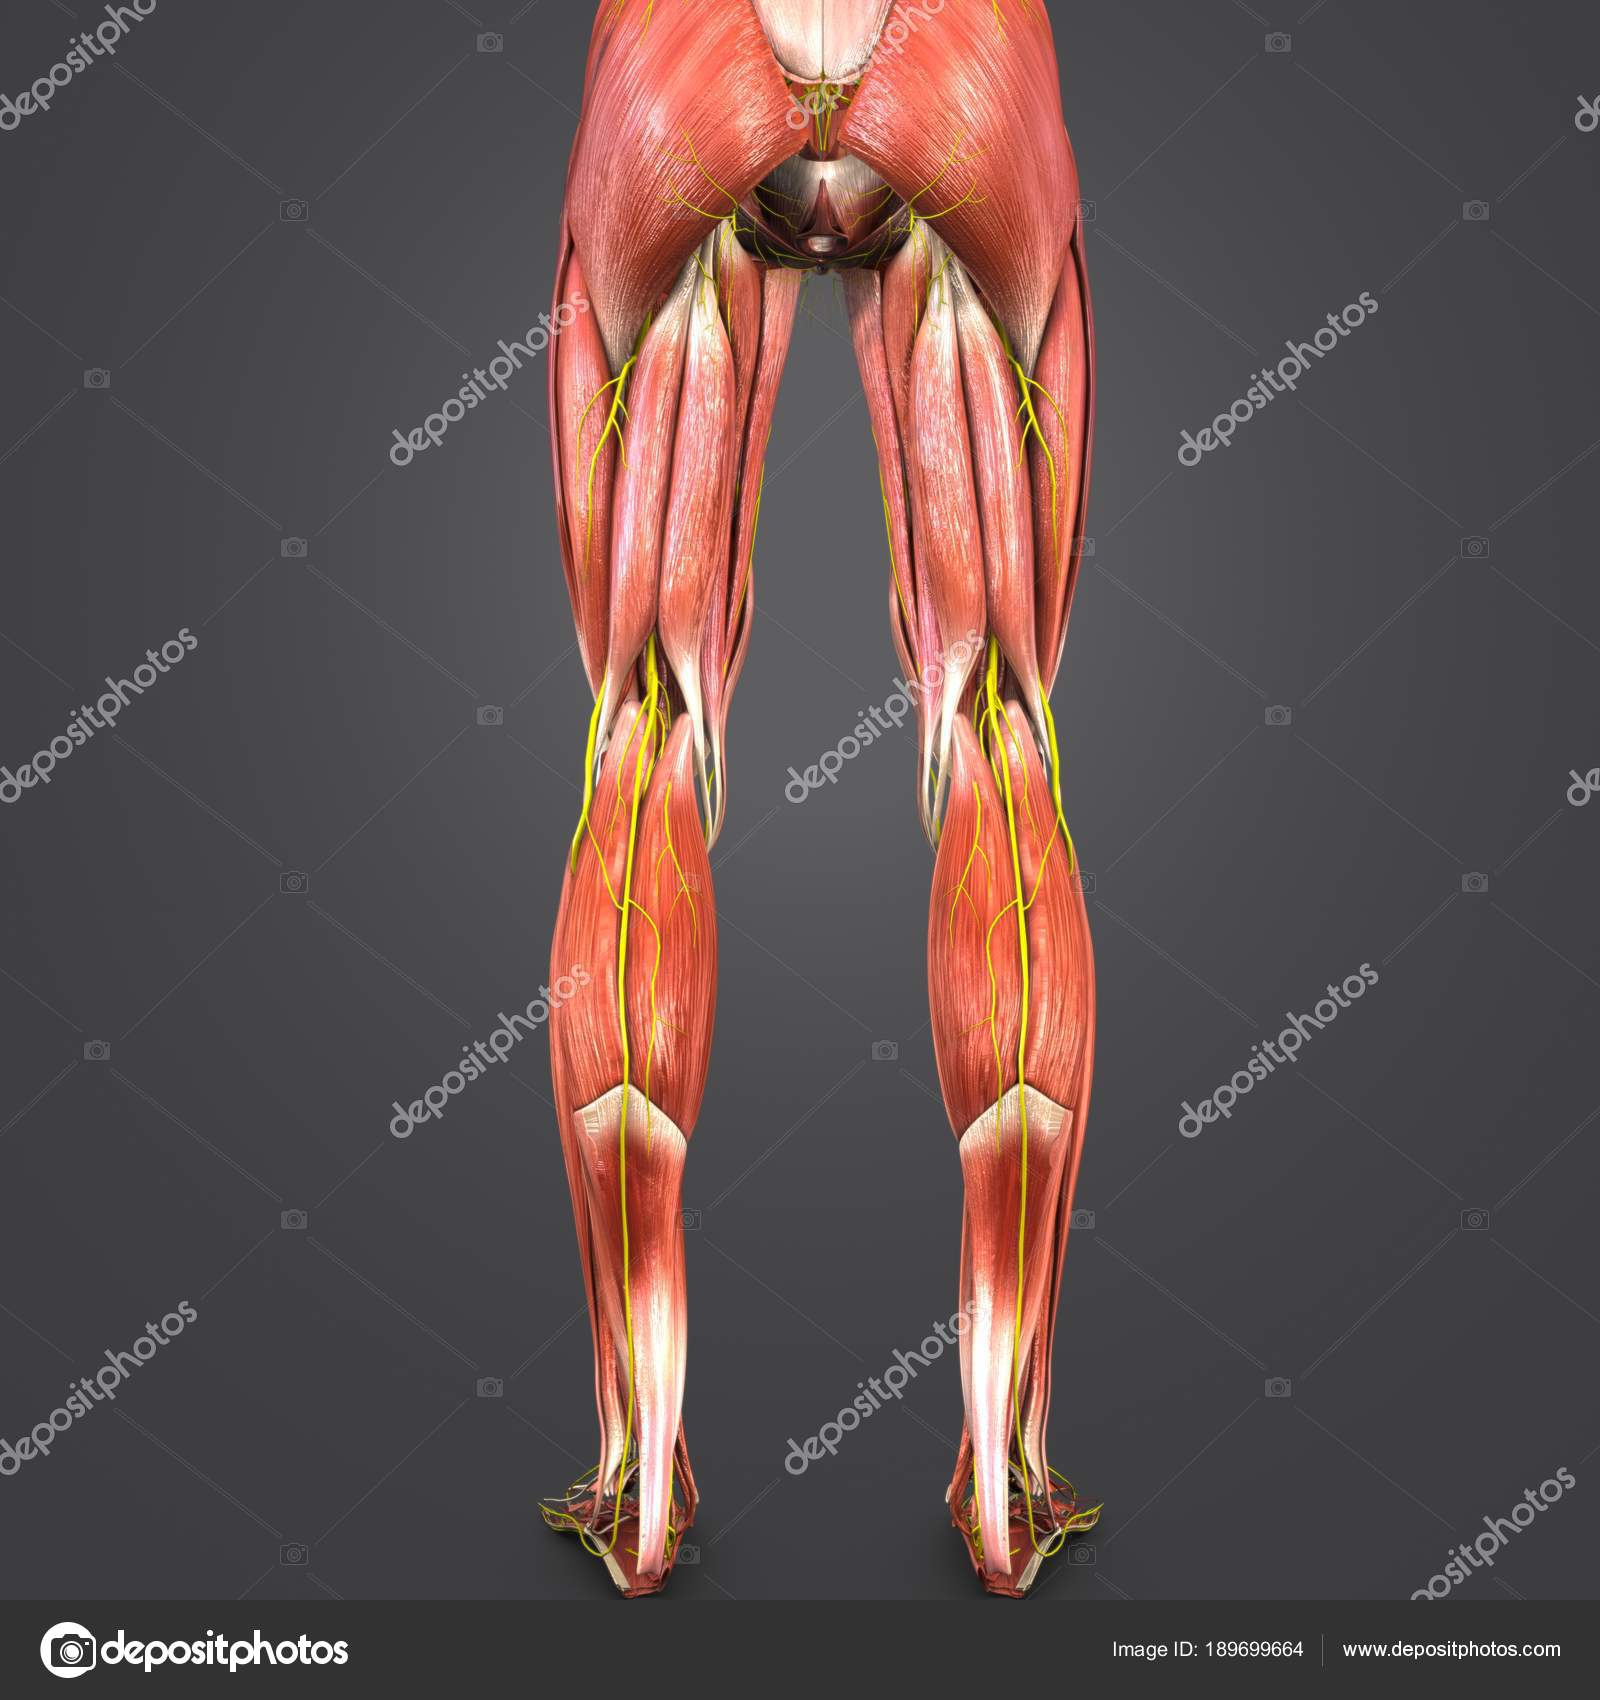 Colorful Medical Illustration Human Lower Limbs Nerves Stock Photo